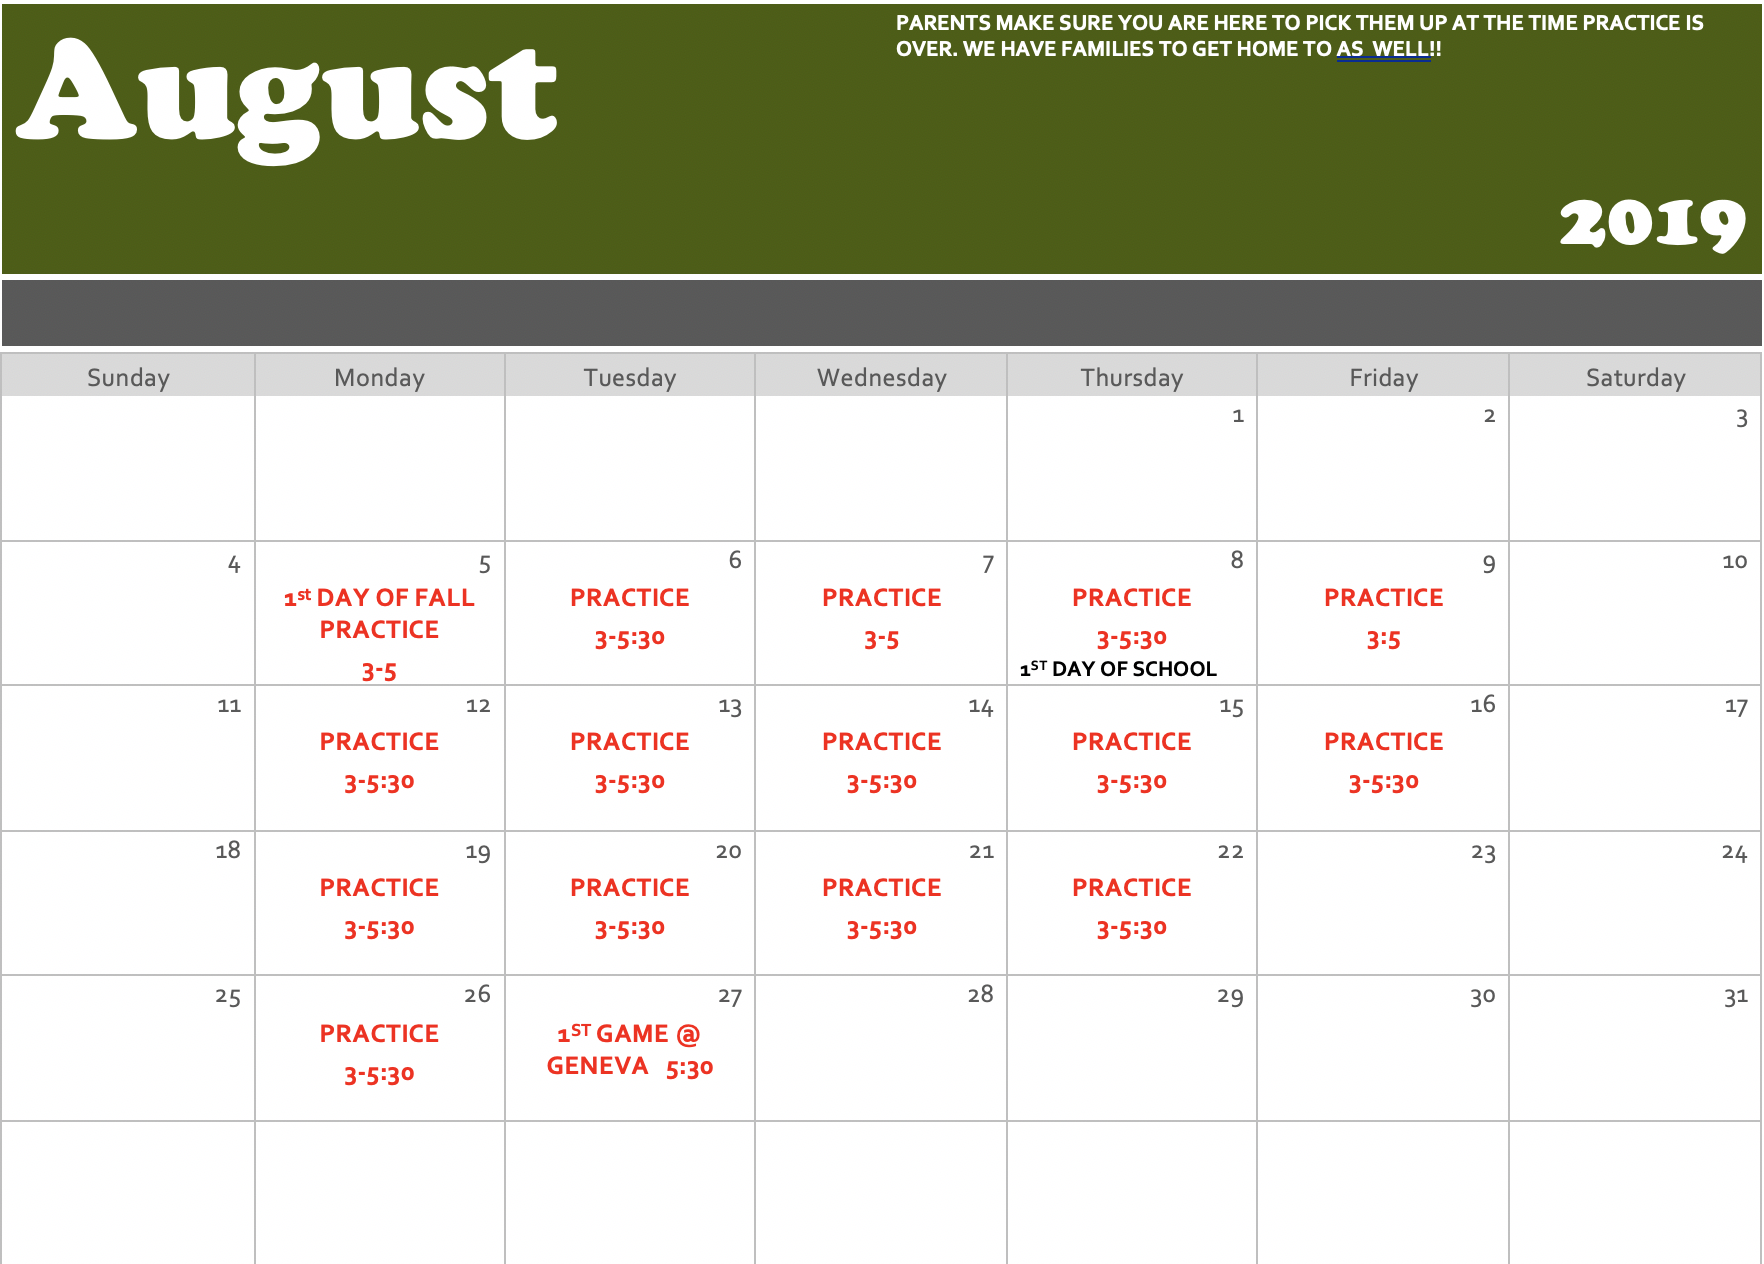 August Workout/Practice Schedule